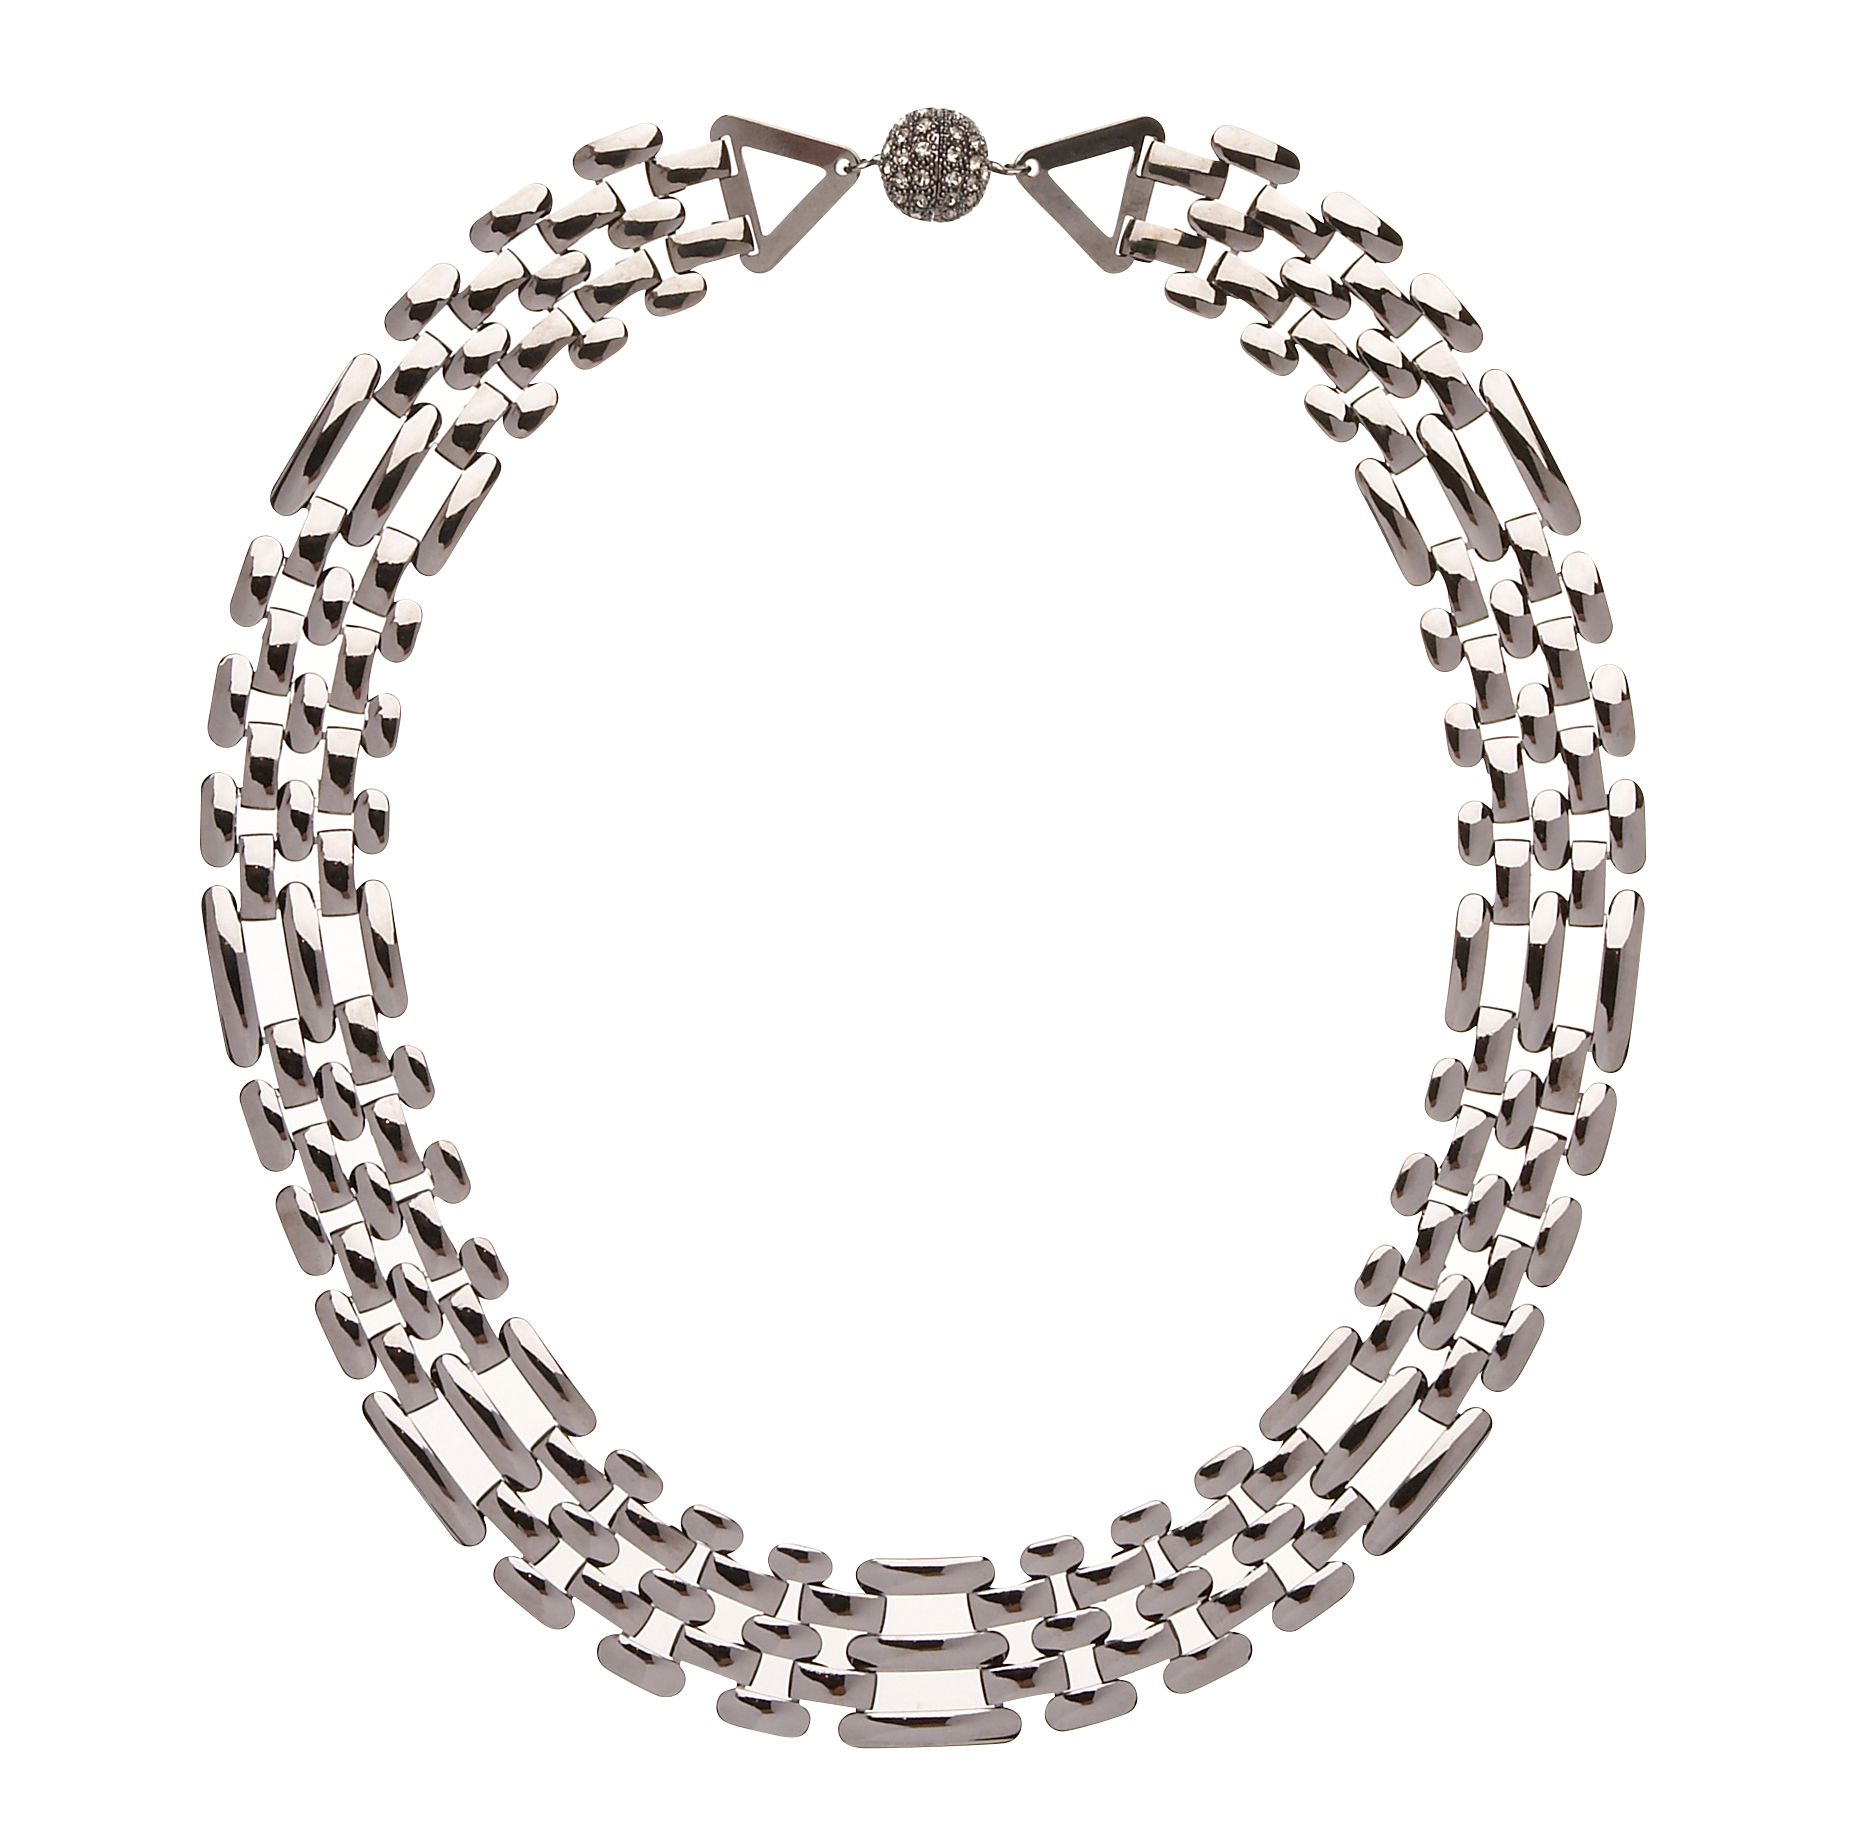 Modern speakeasy chain necklace